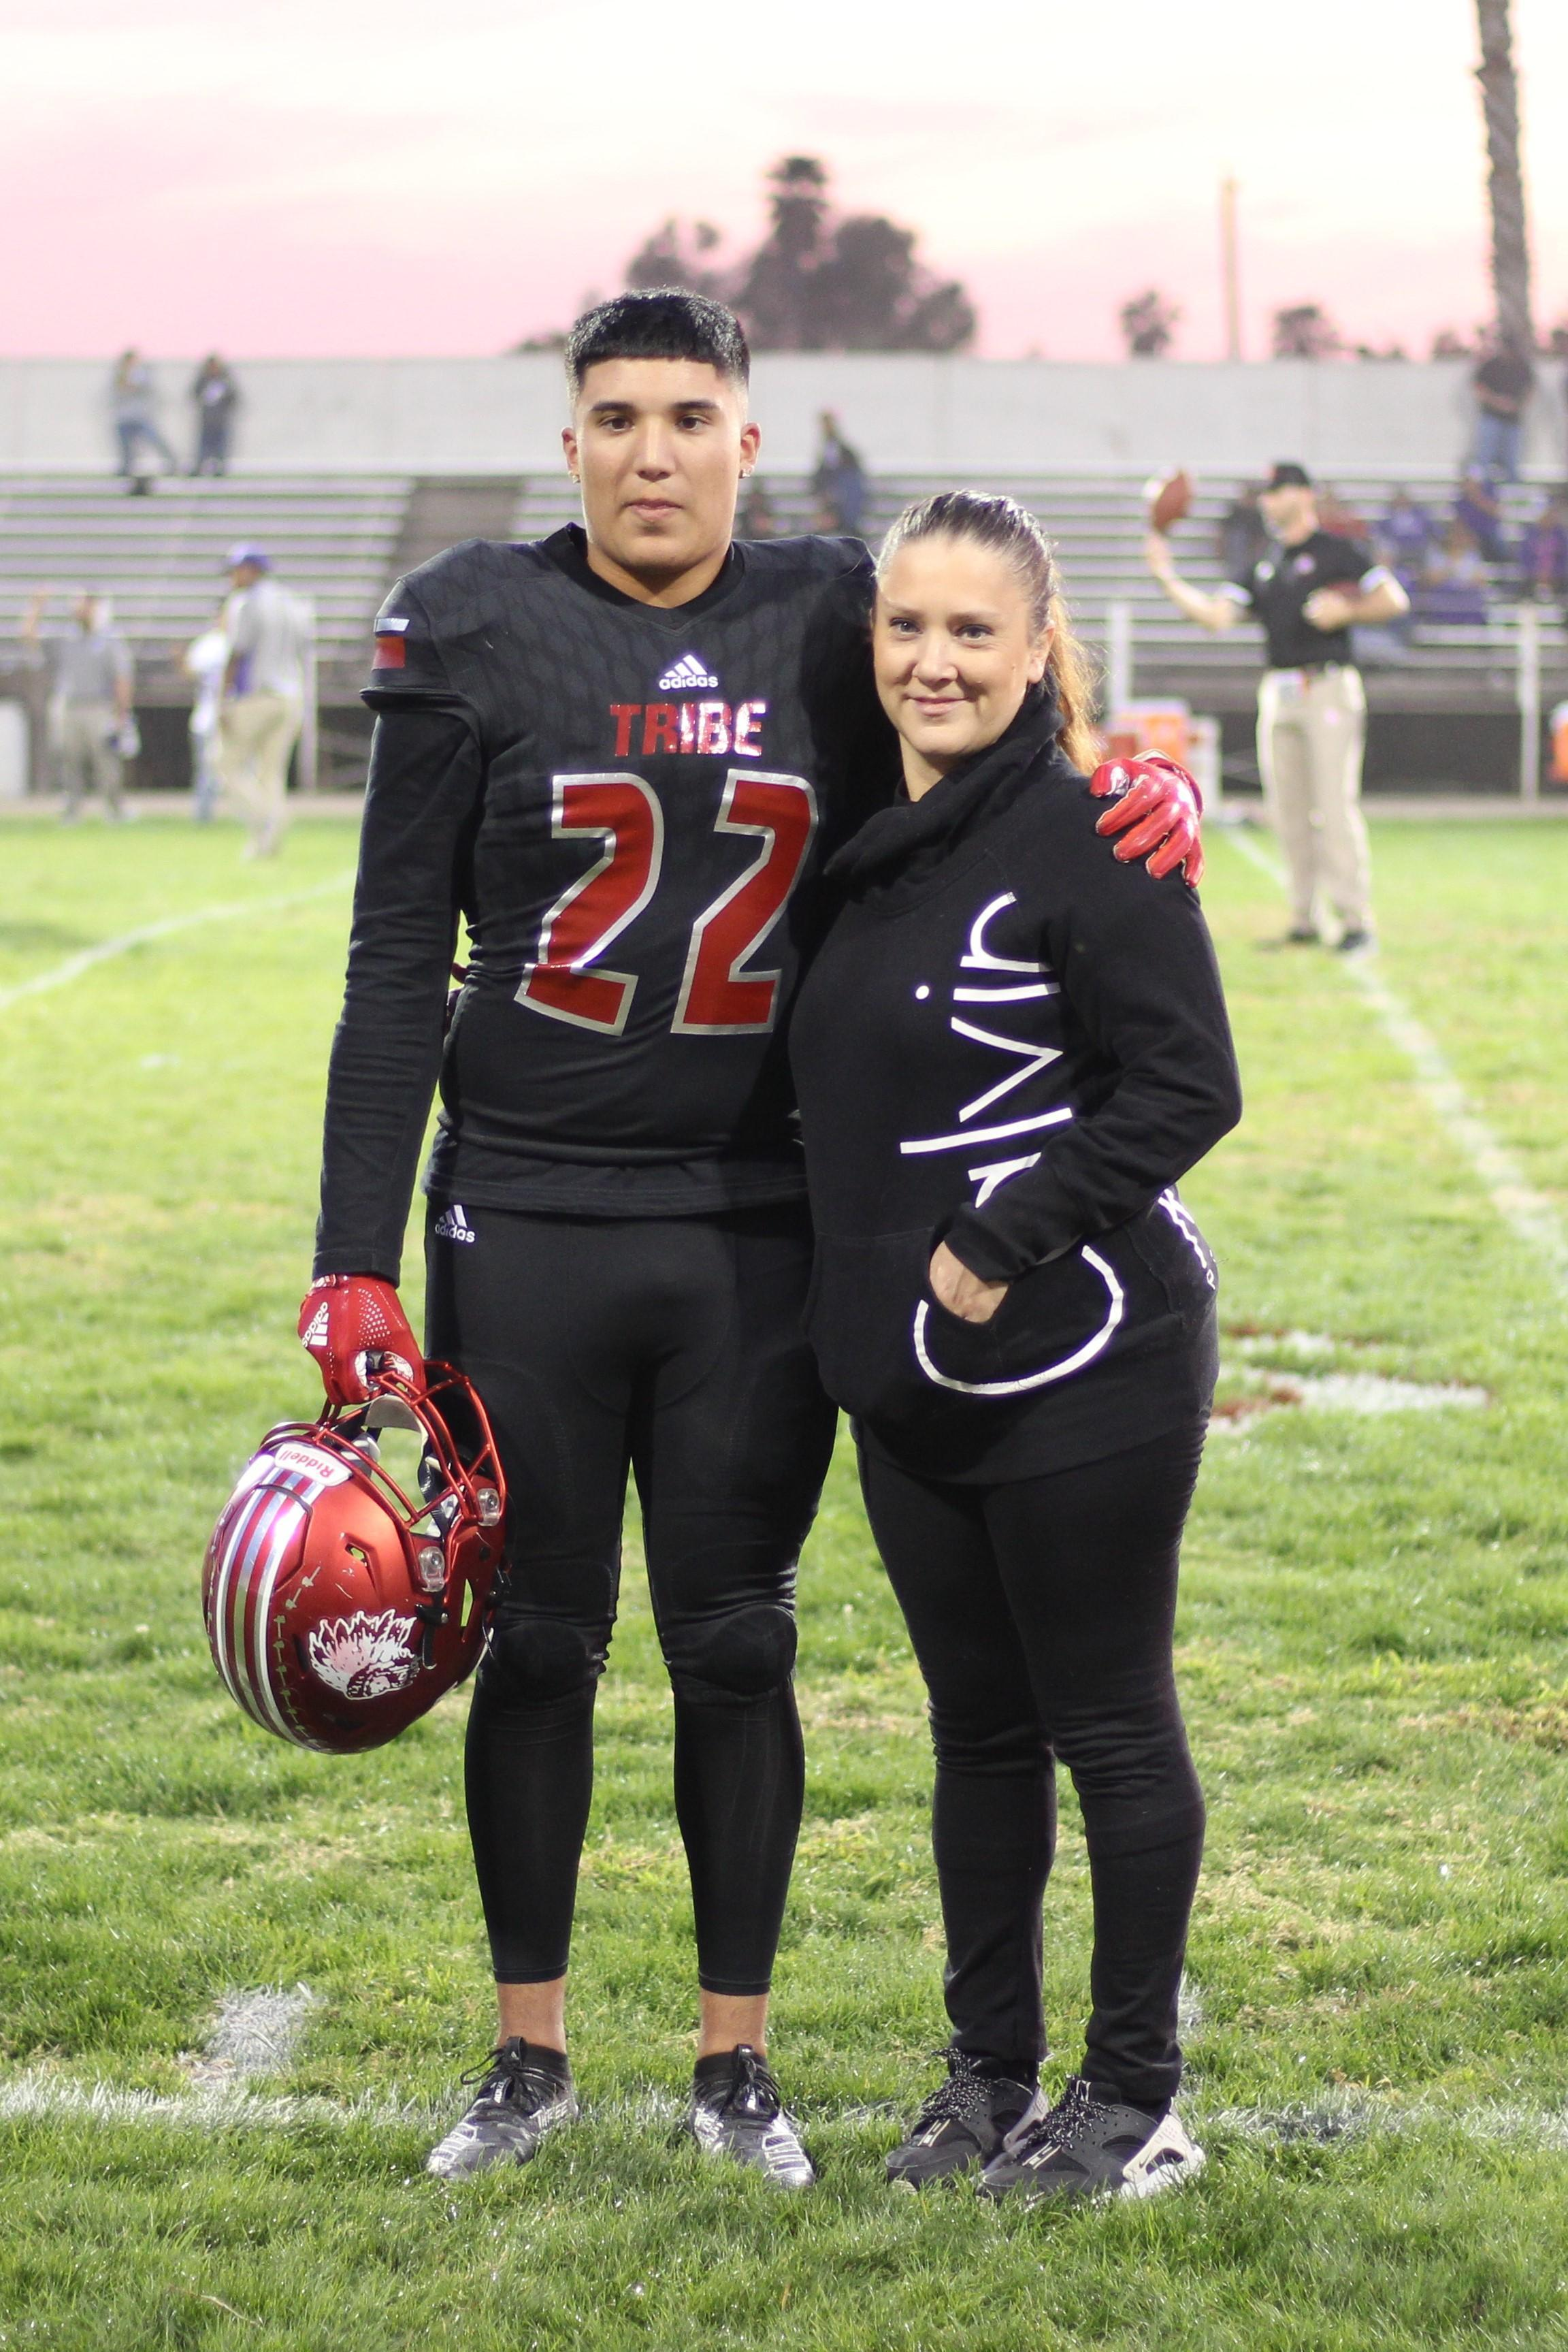 Senior football player Darian Lopez and his escort.